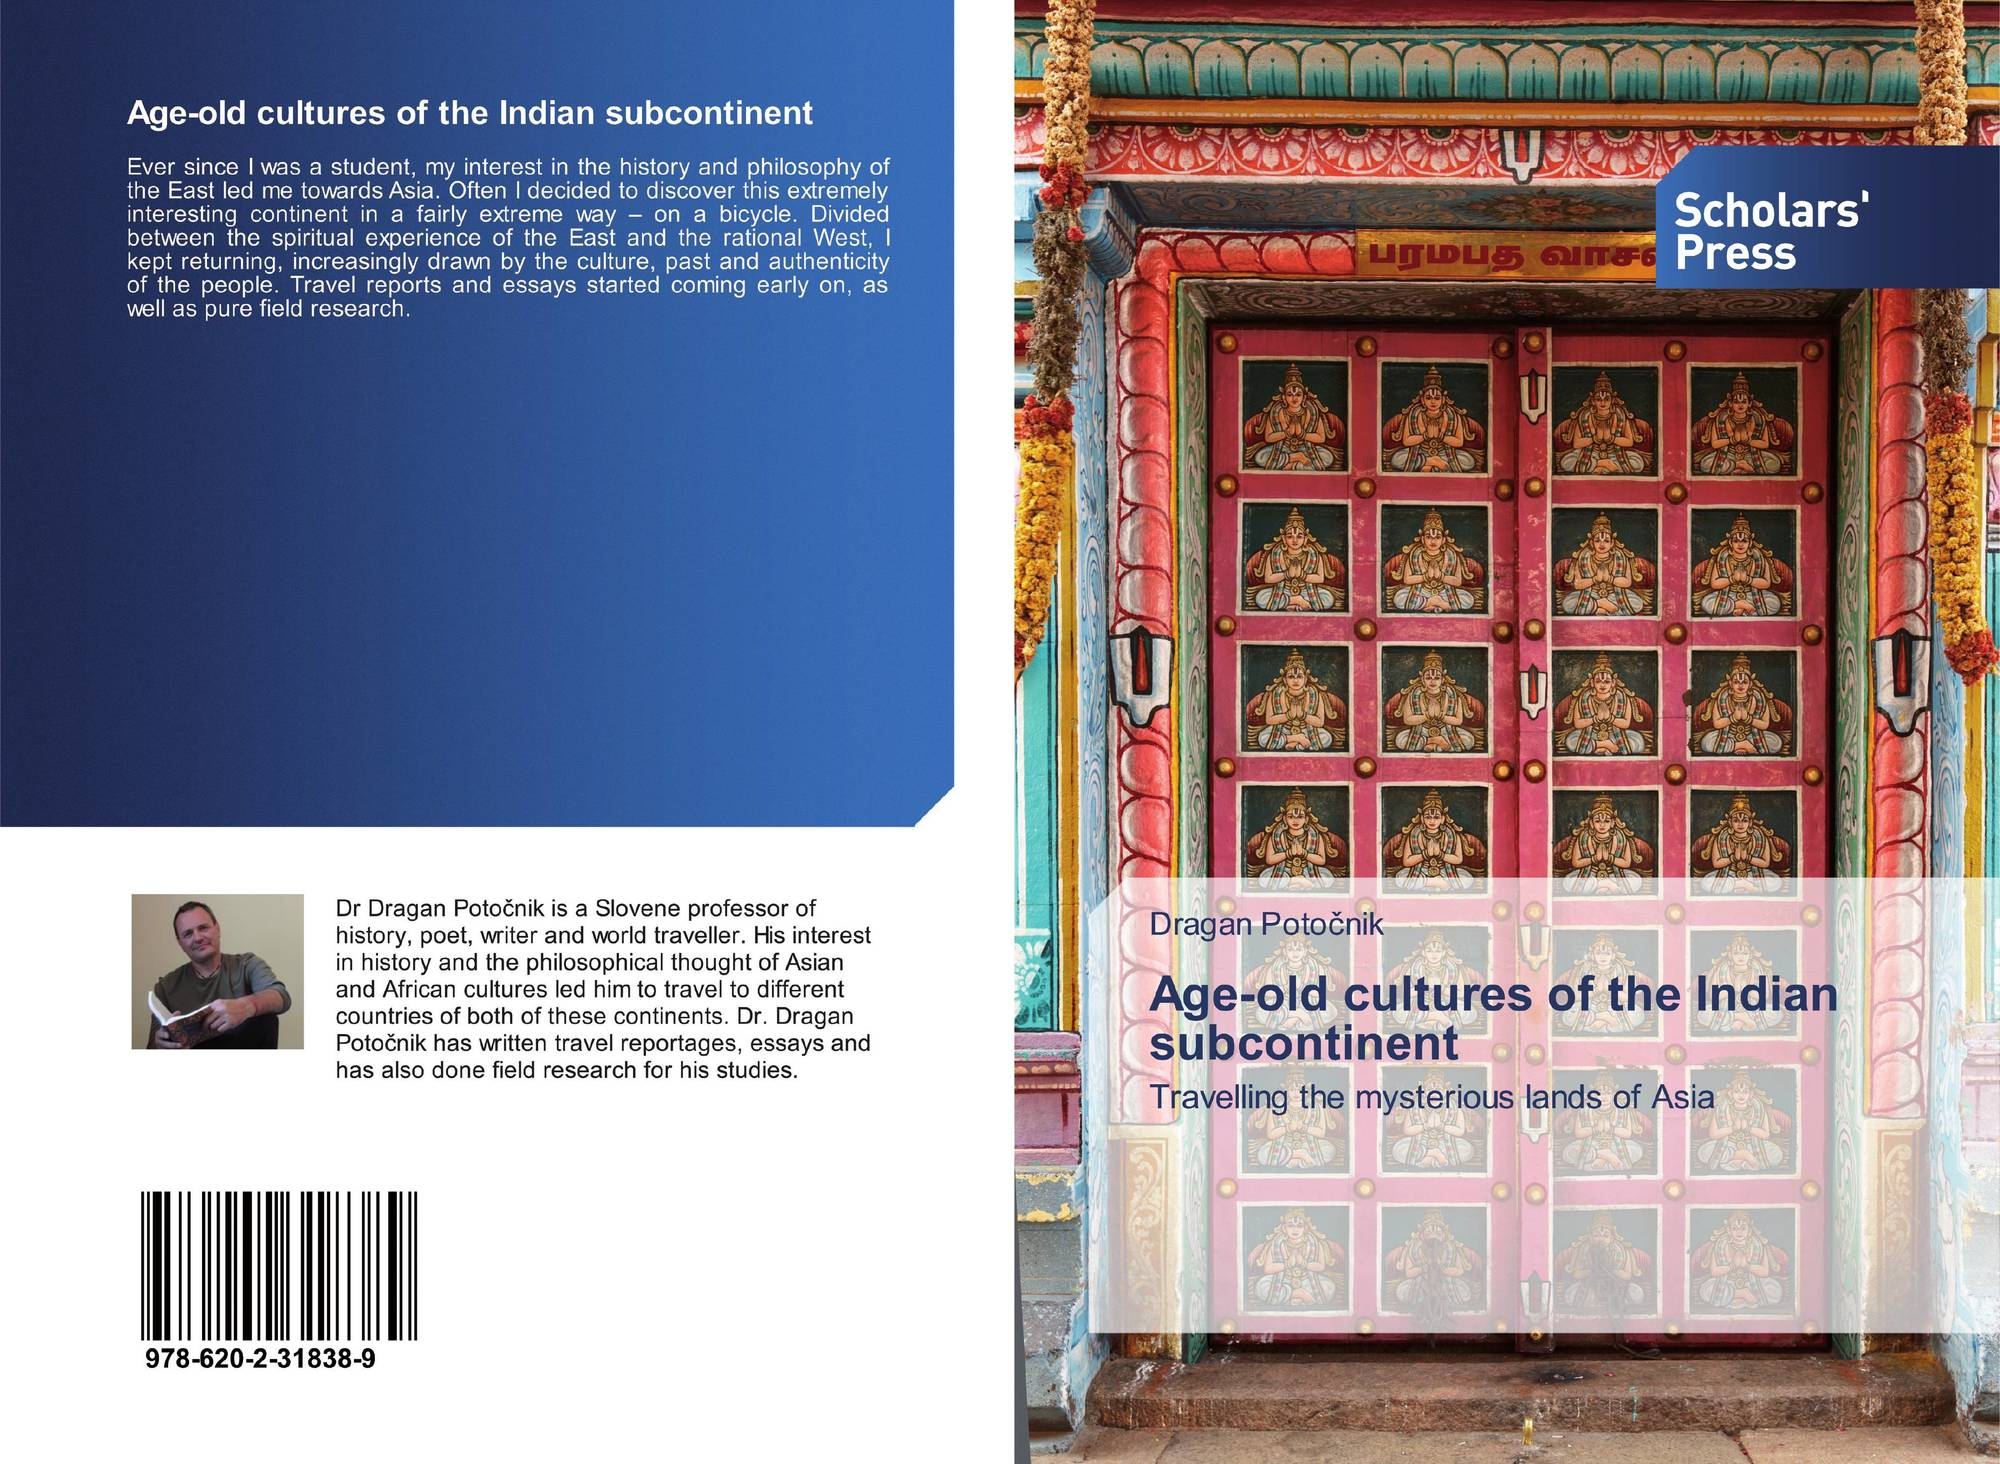 Age-old cultures of the Indian subcontinent, 978-620-2-31838